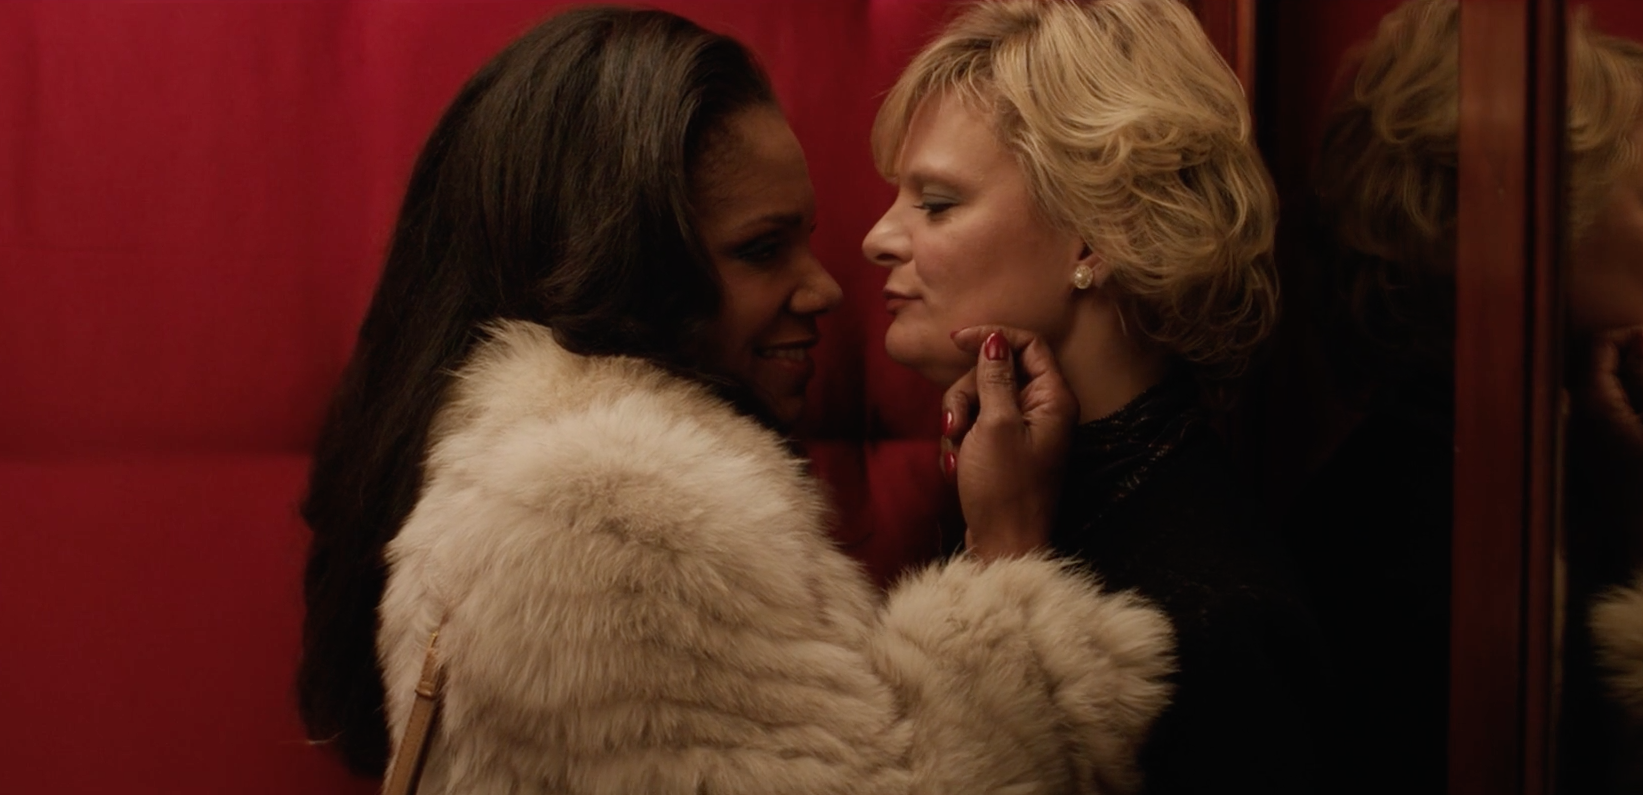 Watch a steamy scene with Broadway stars Audra McDonald and Martha Plimpton